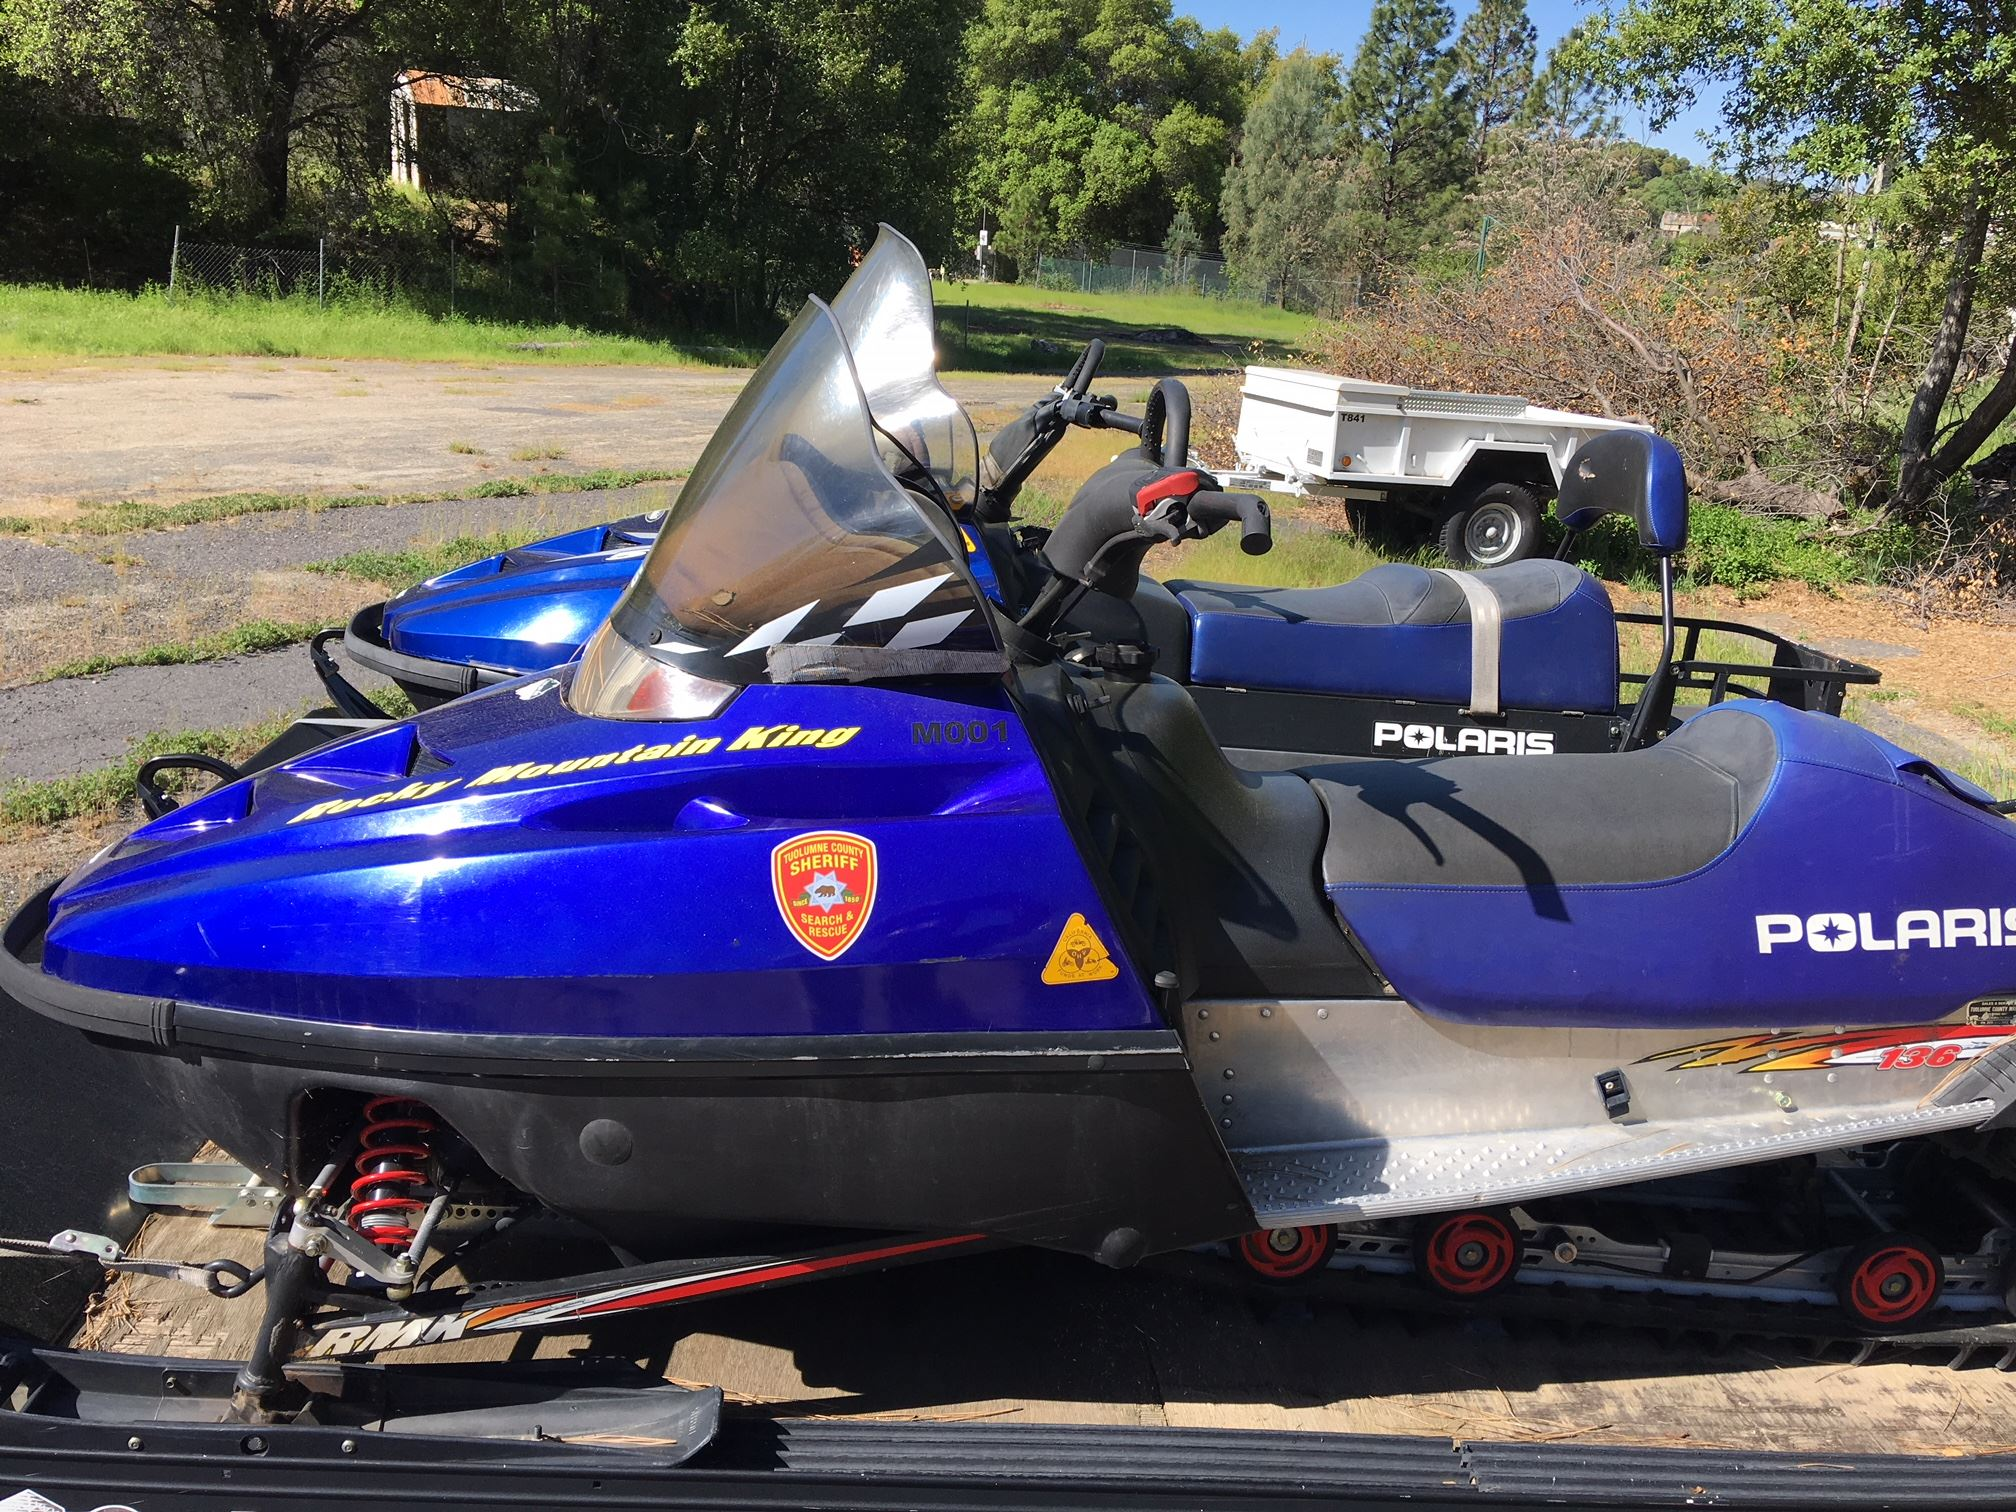 2000 Polaris 600 Snowmobile M001